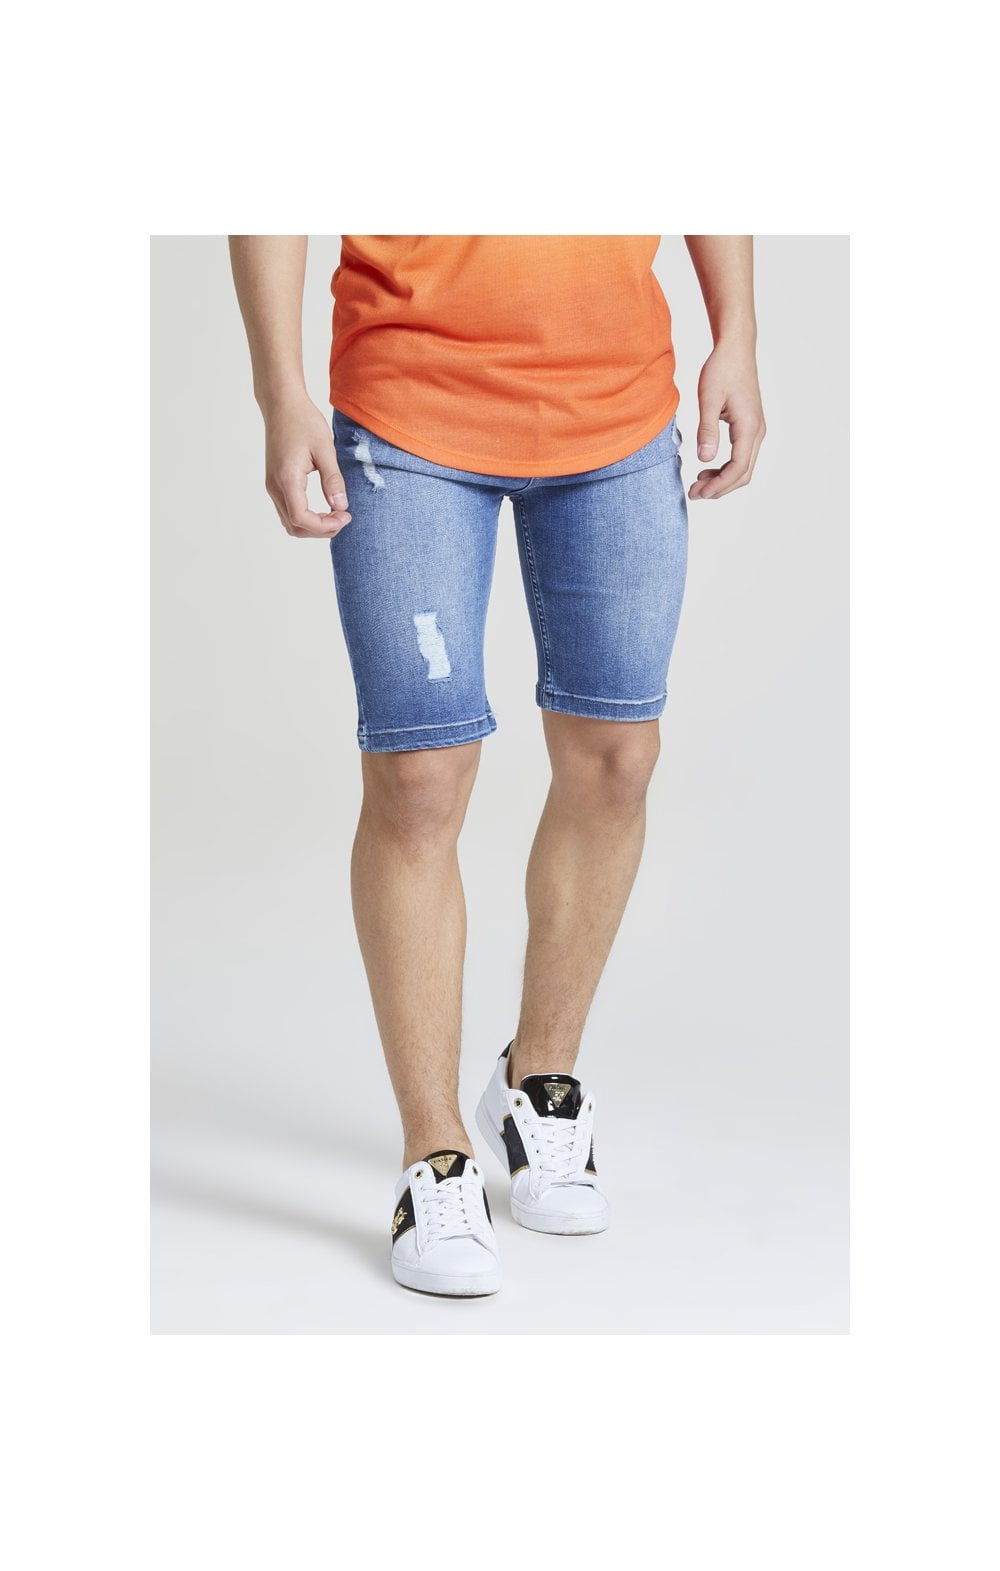 Illusive London Distressed Denim Shorts - Midstone Wash Blue (1)